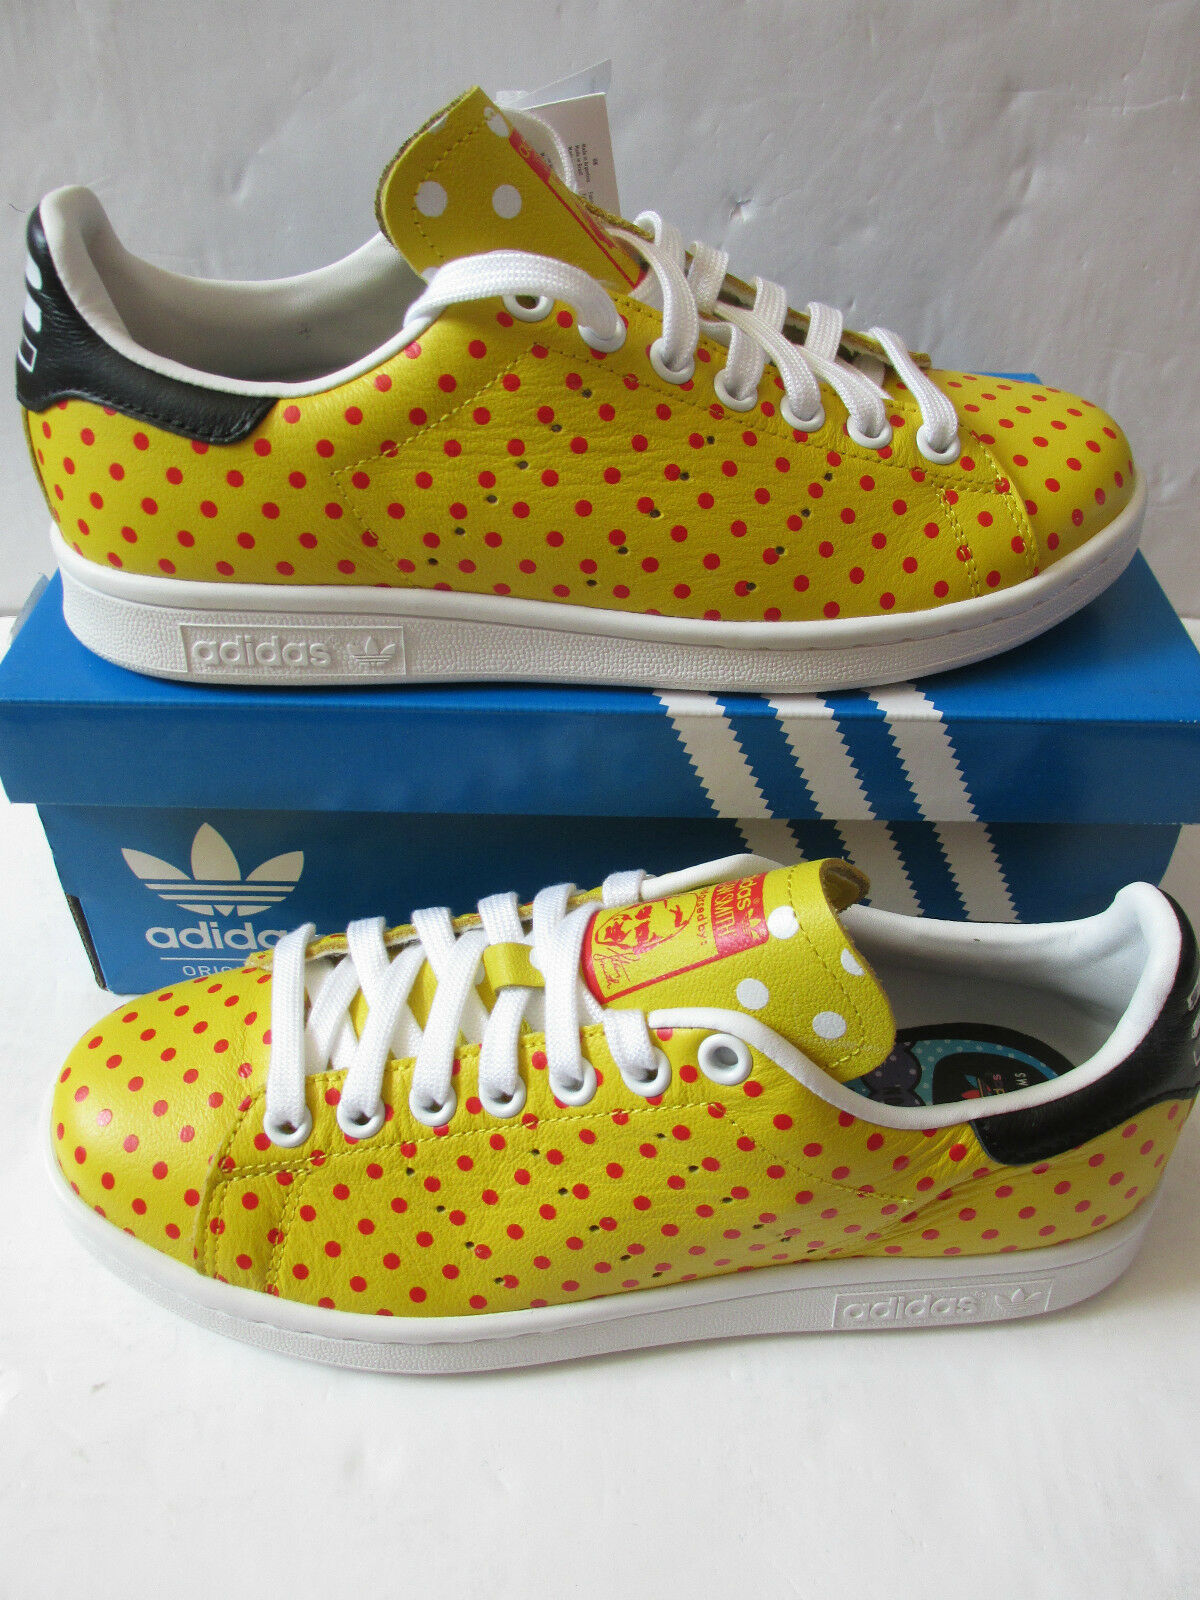 4ed7d67270c41 high-quality adidas originals PW stan smith SPD B25402 mens trainers  sneakers shoes